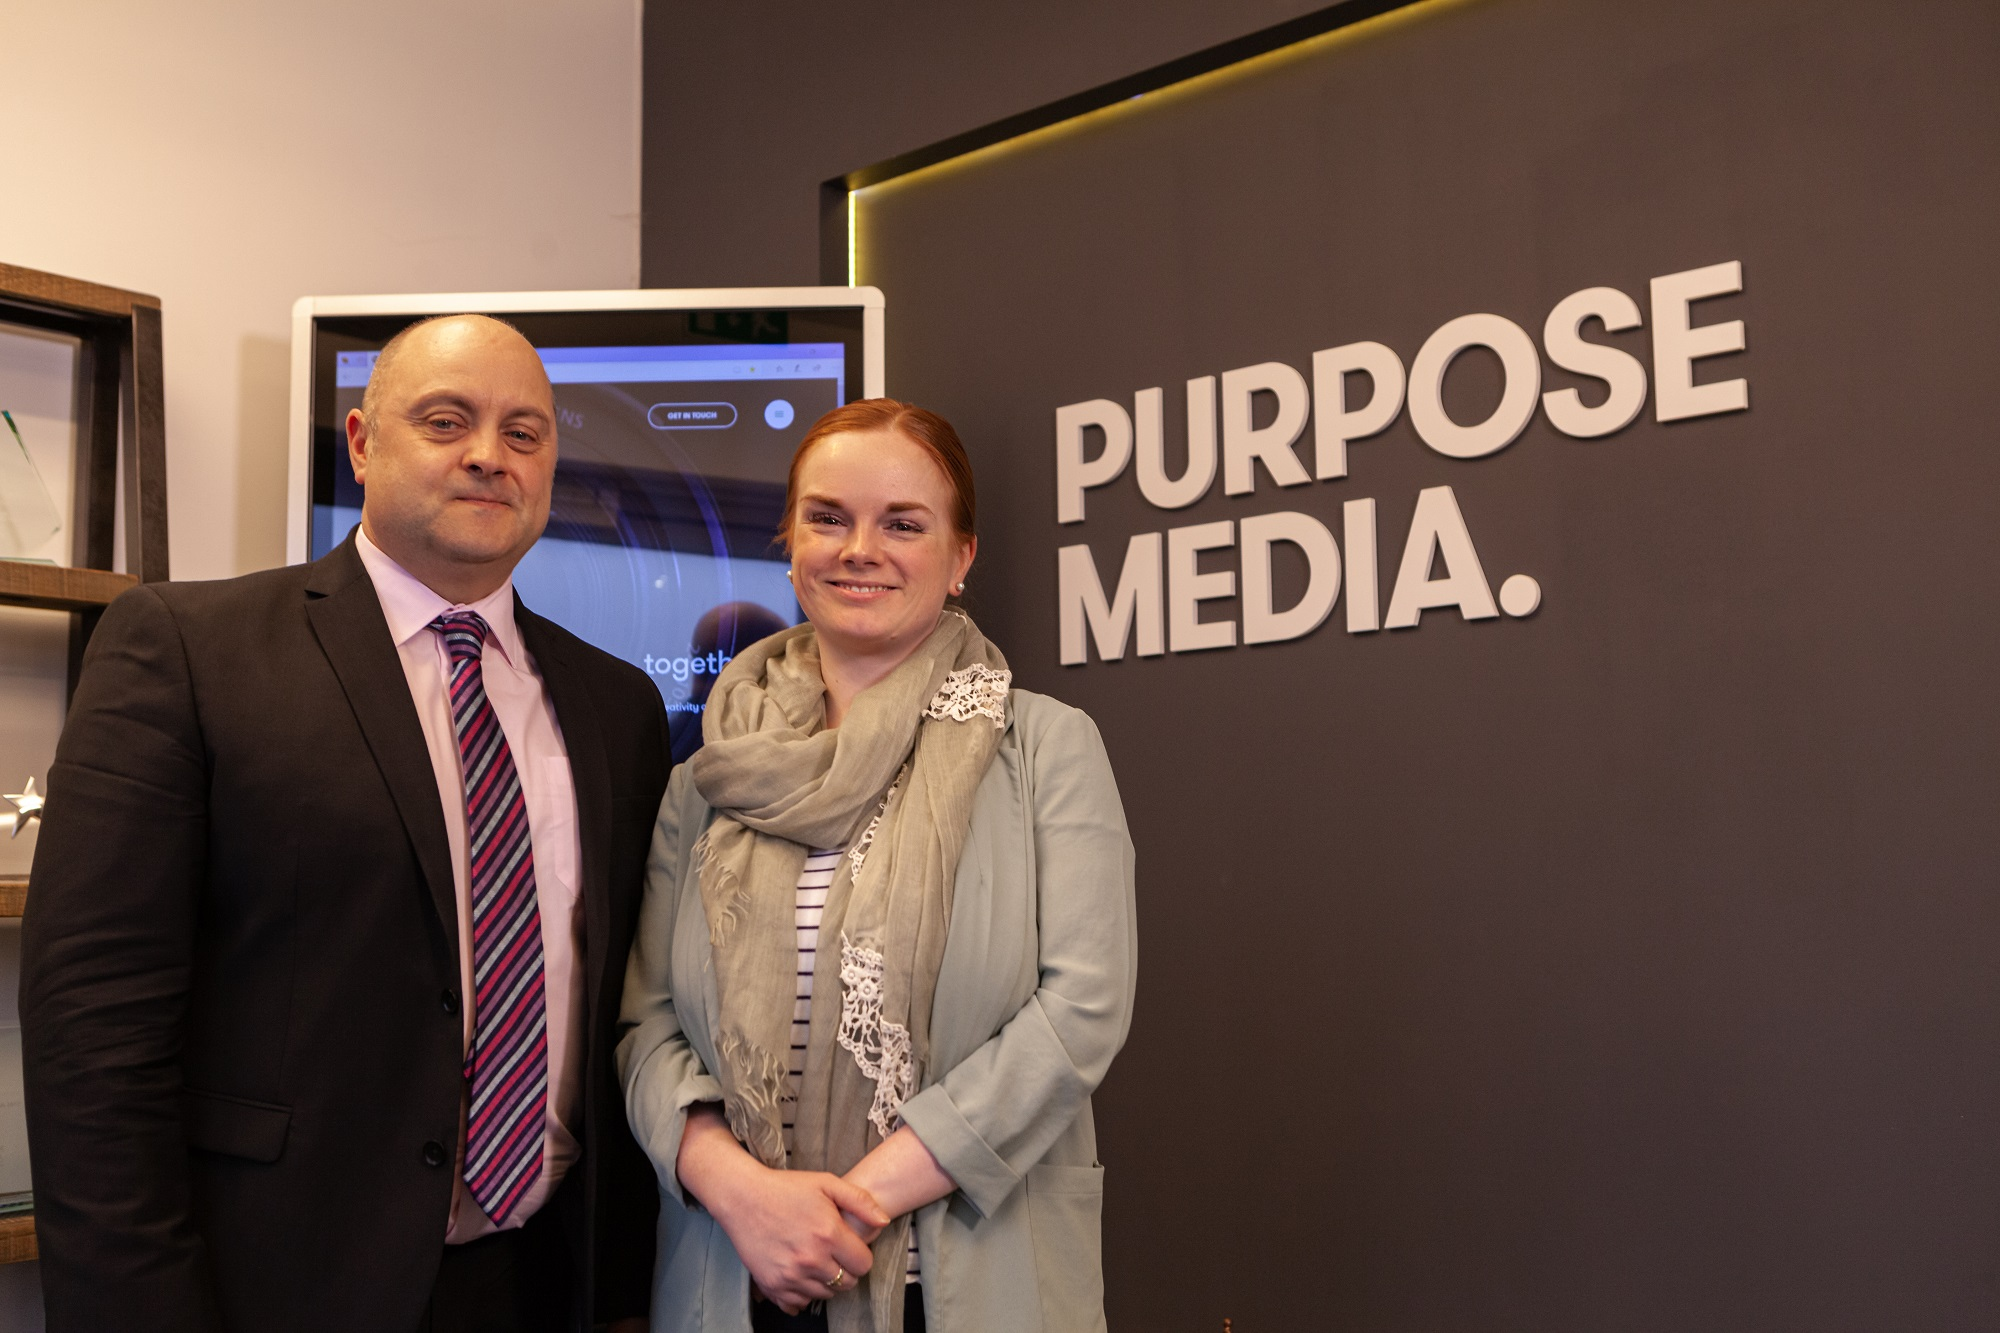 Purpose Media strengthens strategic link with East Midlands Chamber